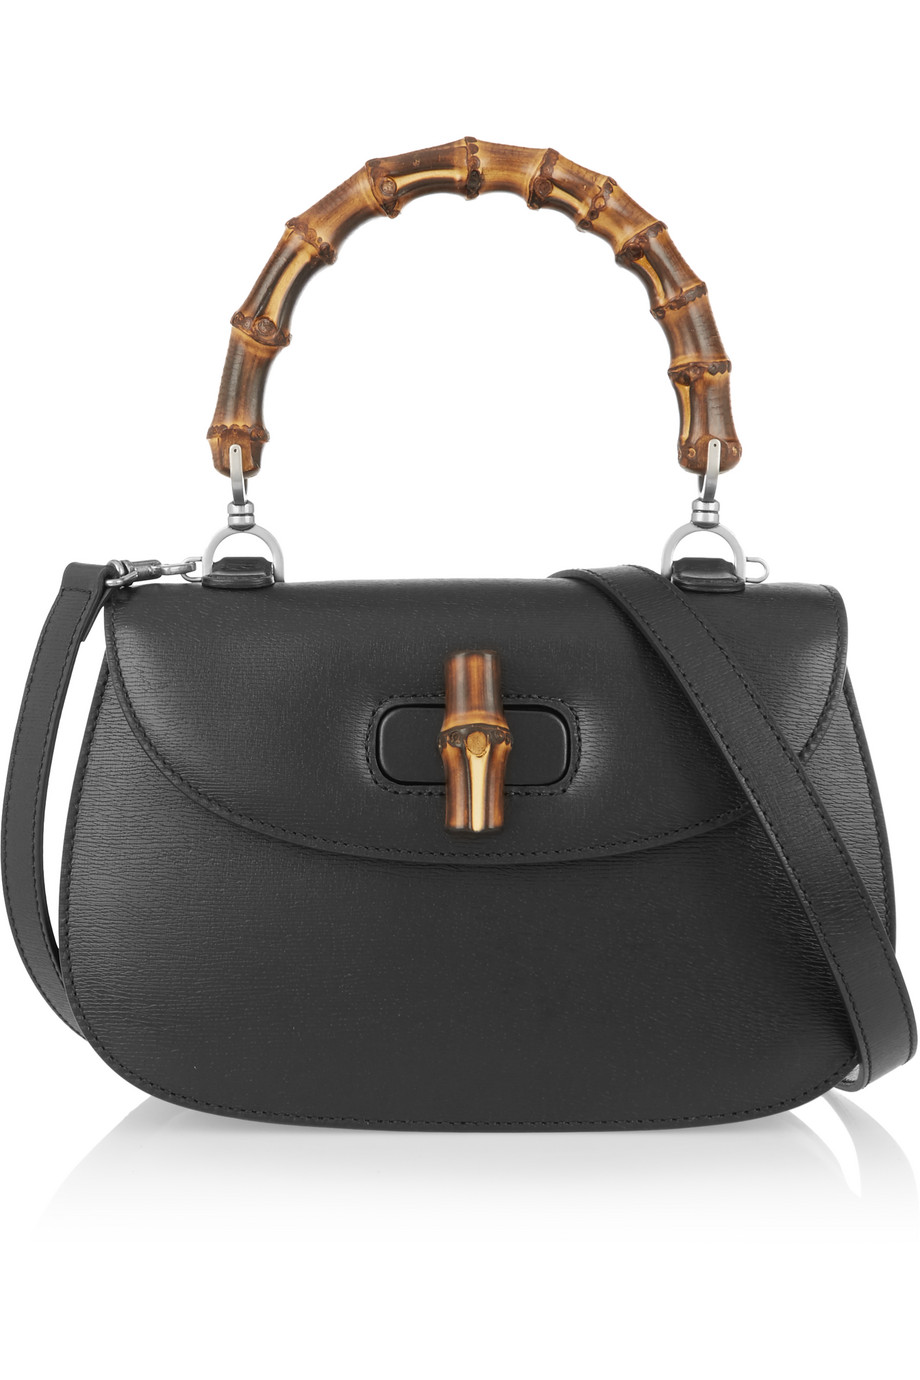 Gucci Bamboo Classic Textured-Leather Shoulder Bag, Black, Women's